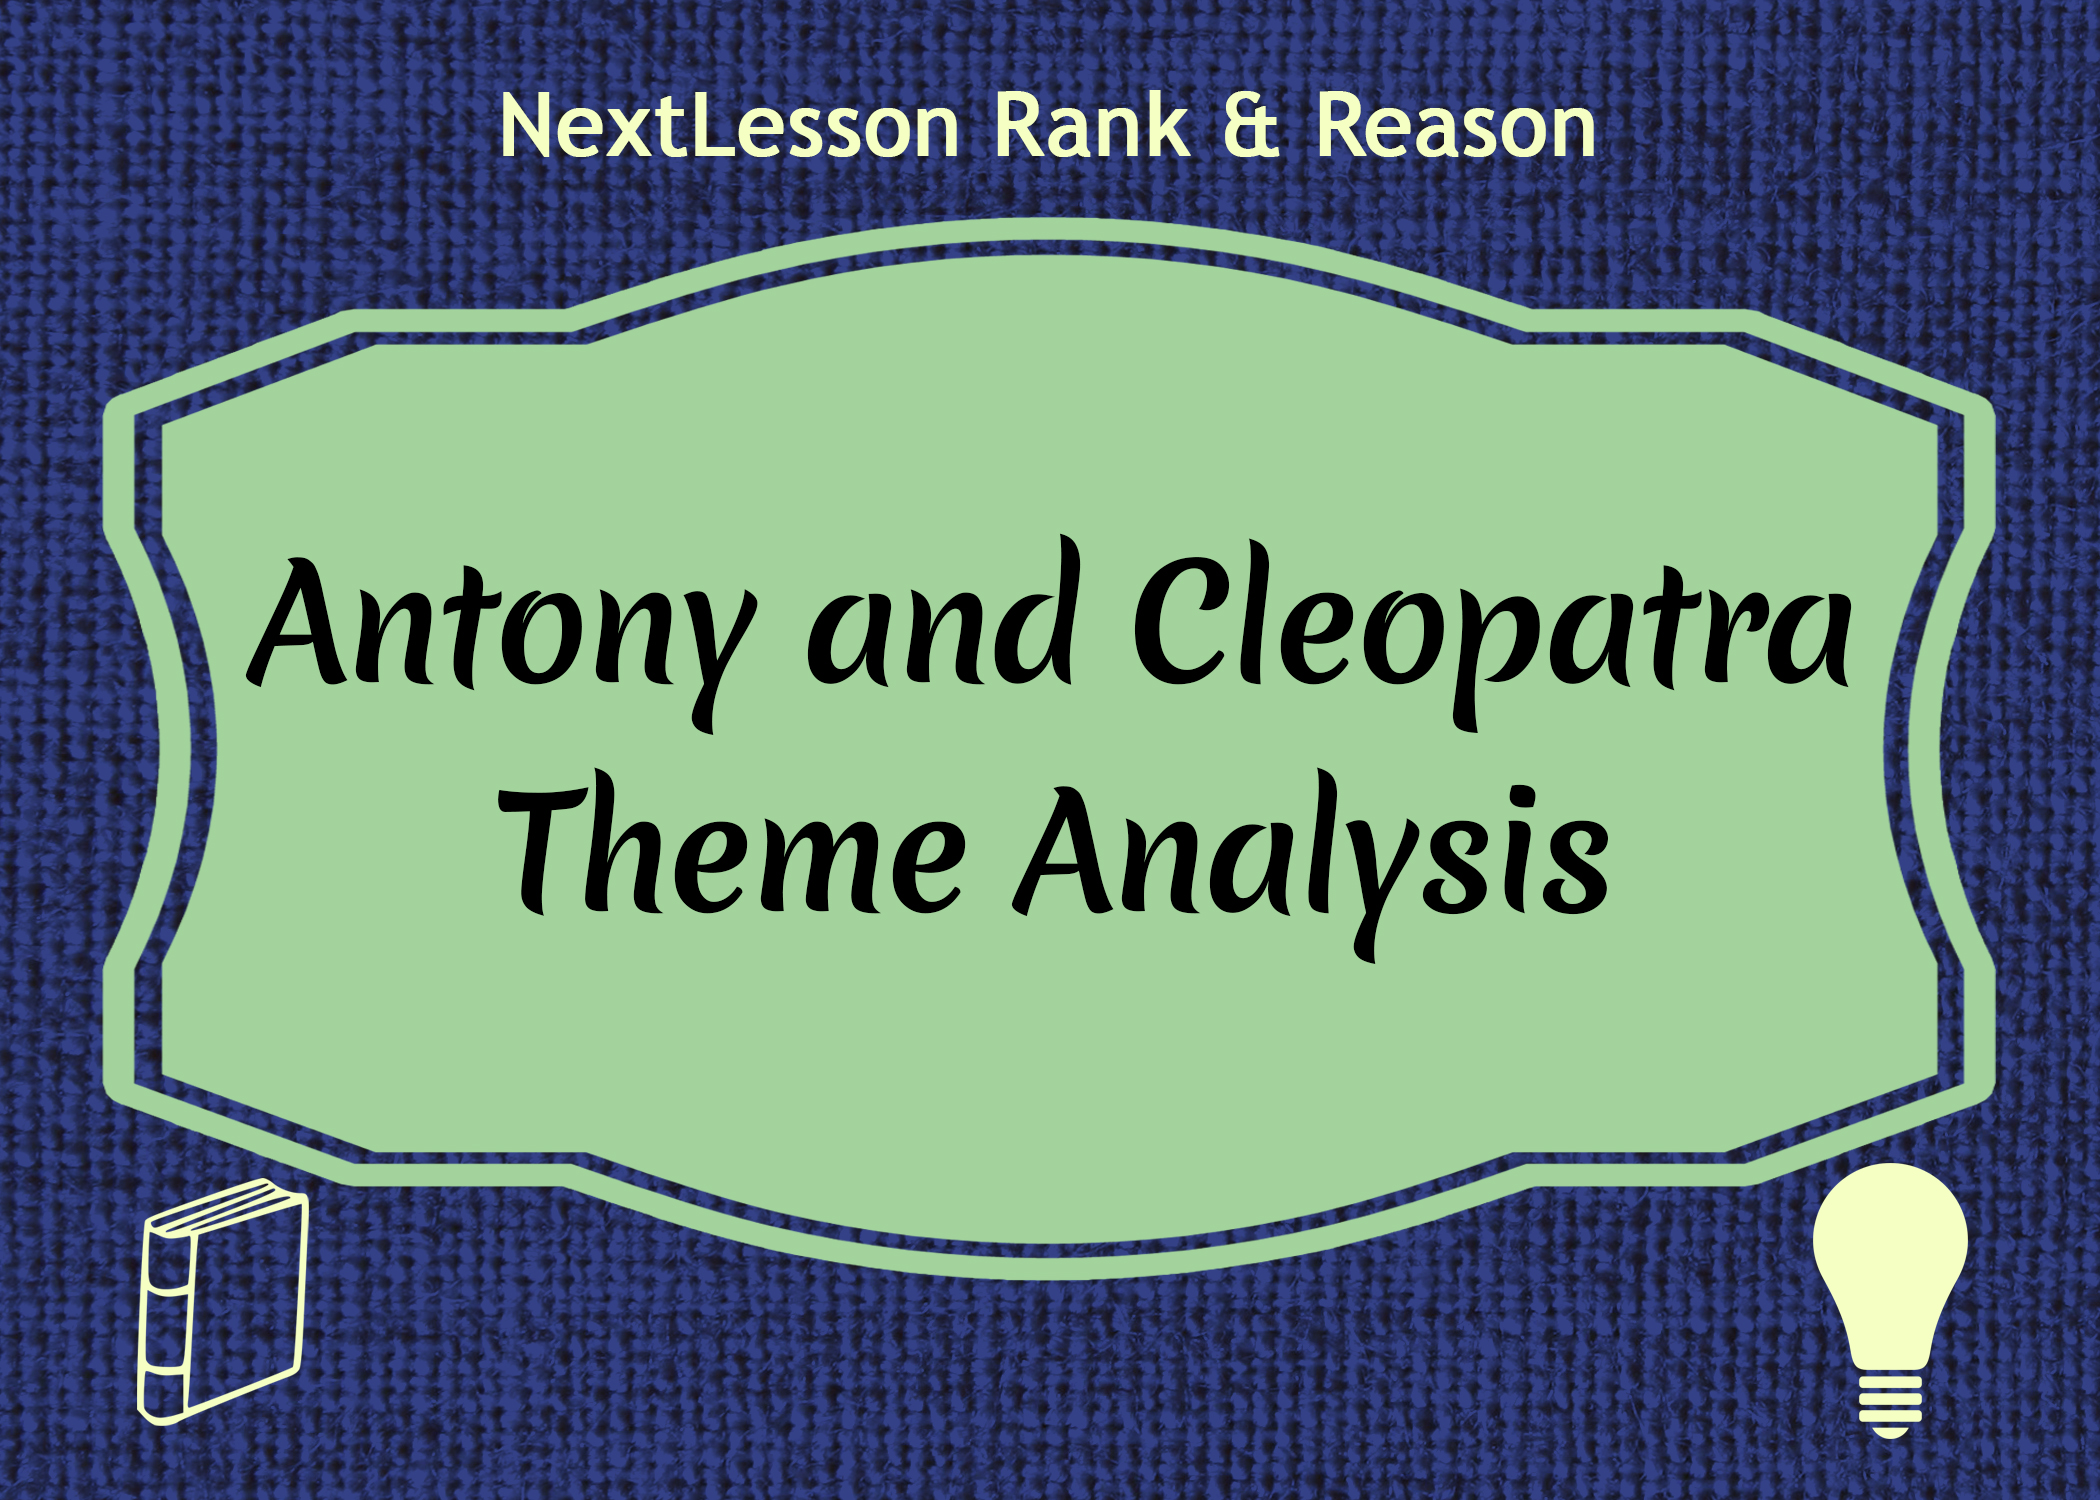 an analysis of antony and cleopatra Analysis and criticism antony and cleopatra is essentially a male-dominated play in which the character of cleopatra takes significance as one of few female.